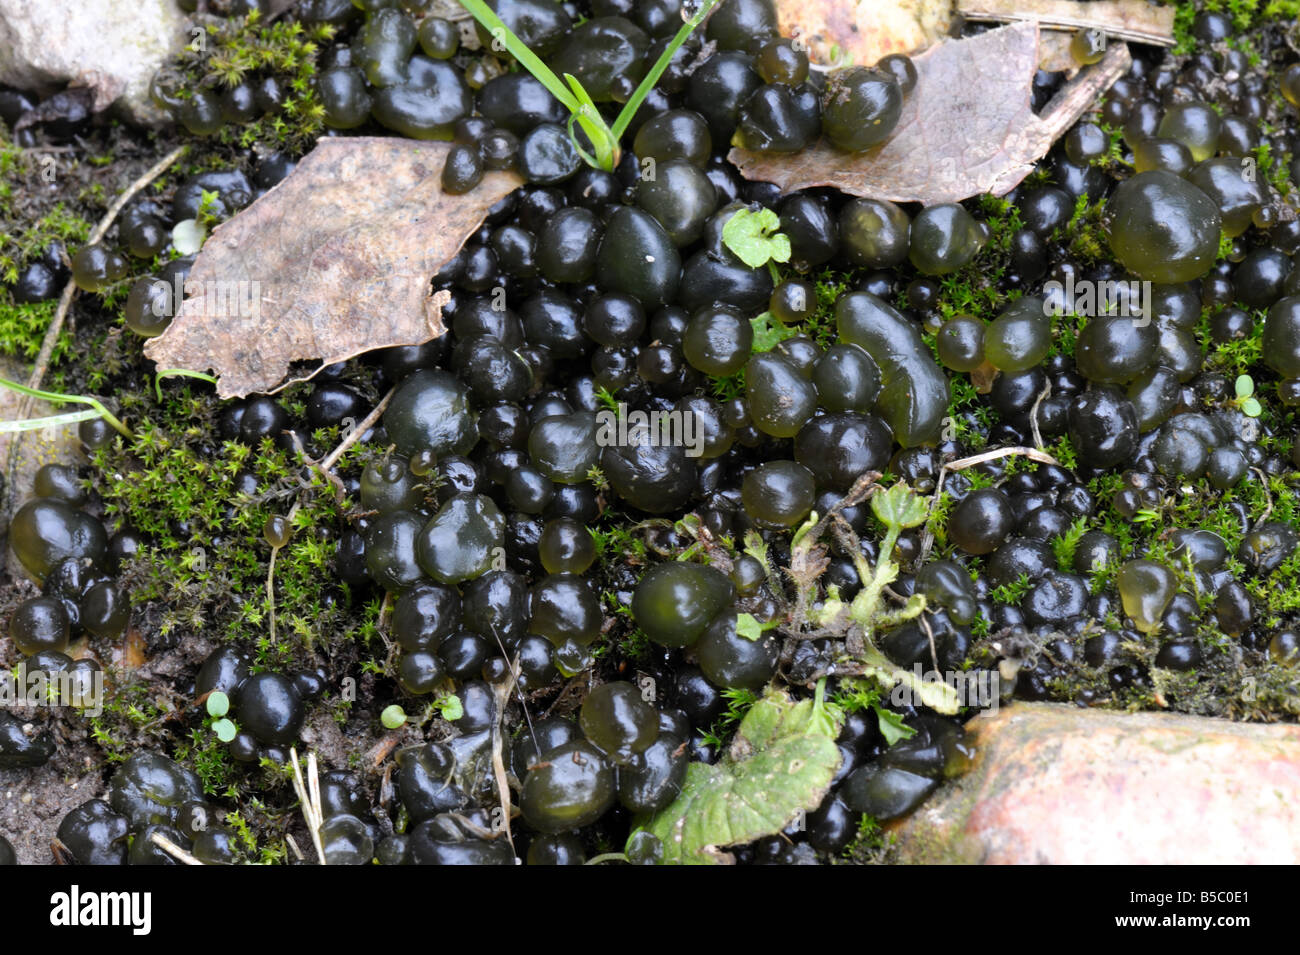 fallen star star jelly or witches butter Nostoc commune swollen moniliform cells after rain - Stock Image